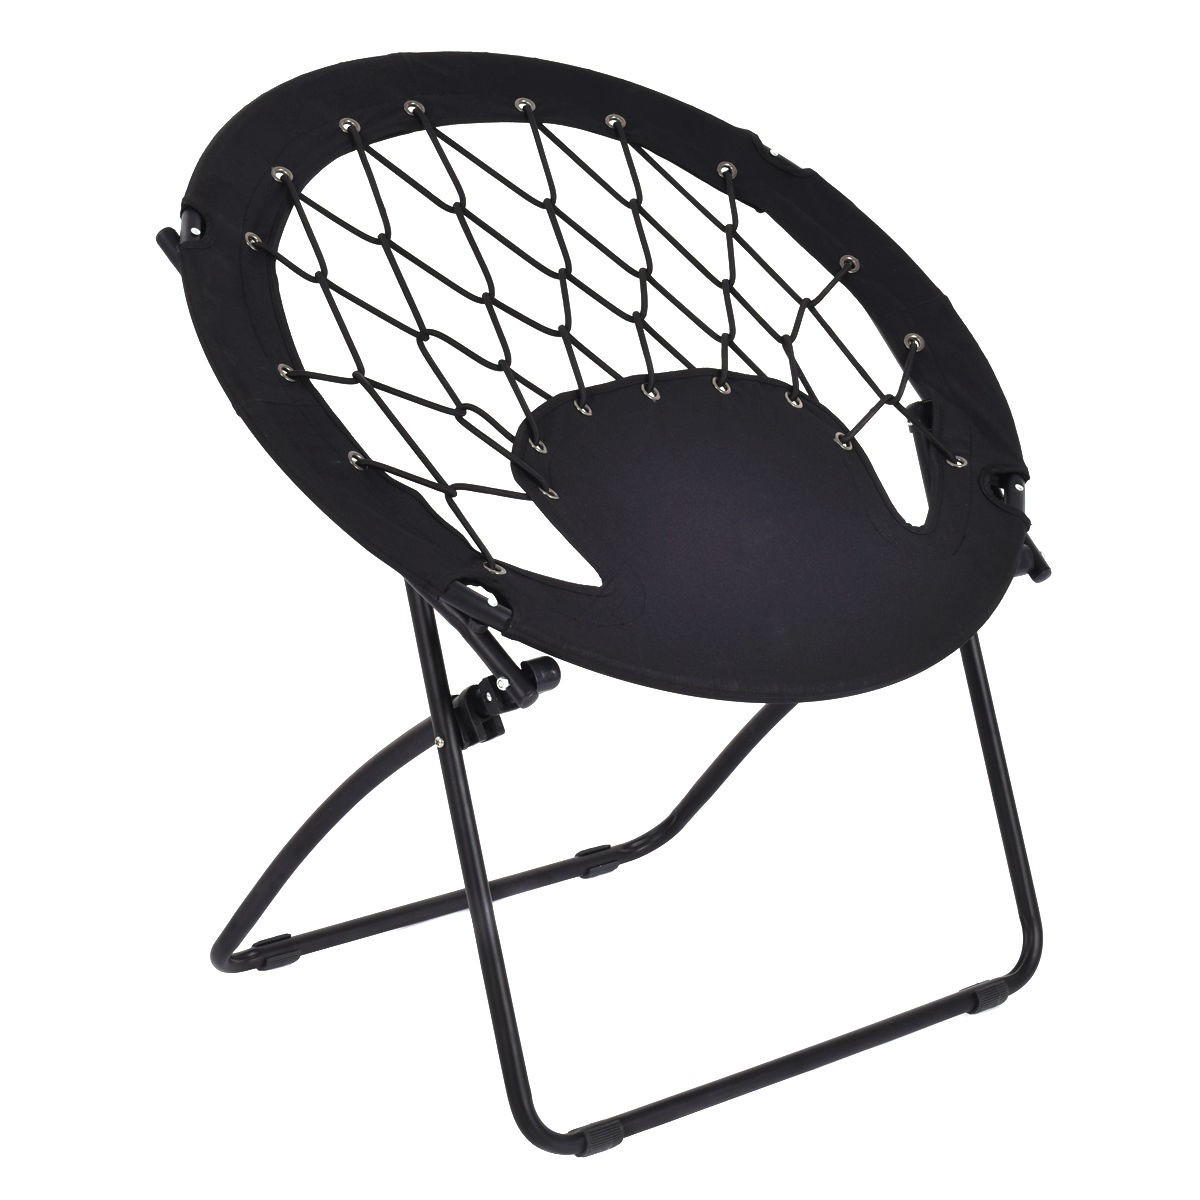 circle bungee cord chair folding hardware outdoor round steel frame camping